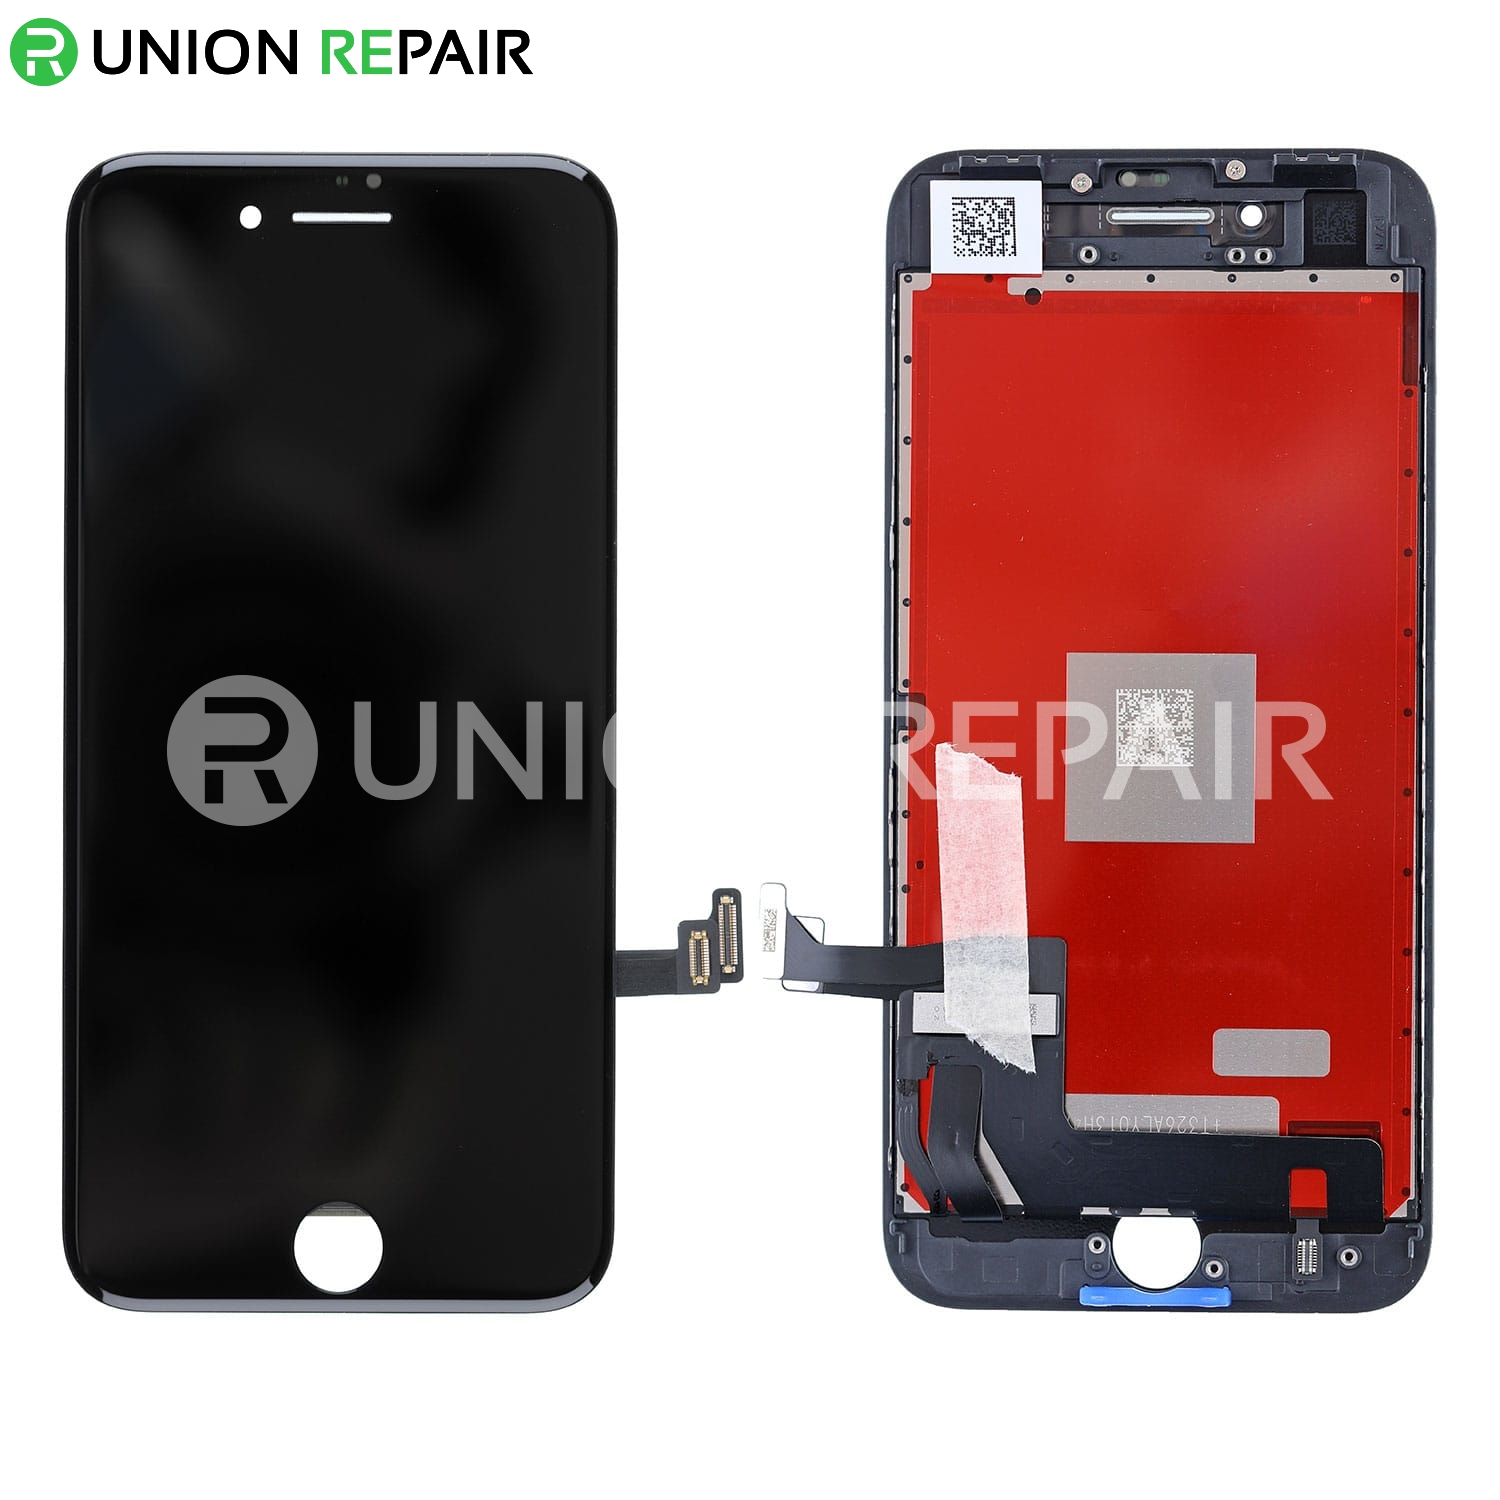 Iphone Screen Replacement Price